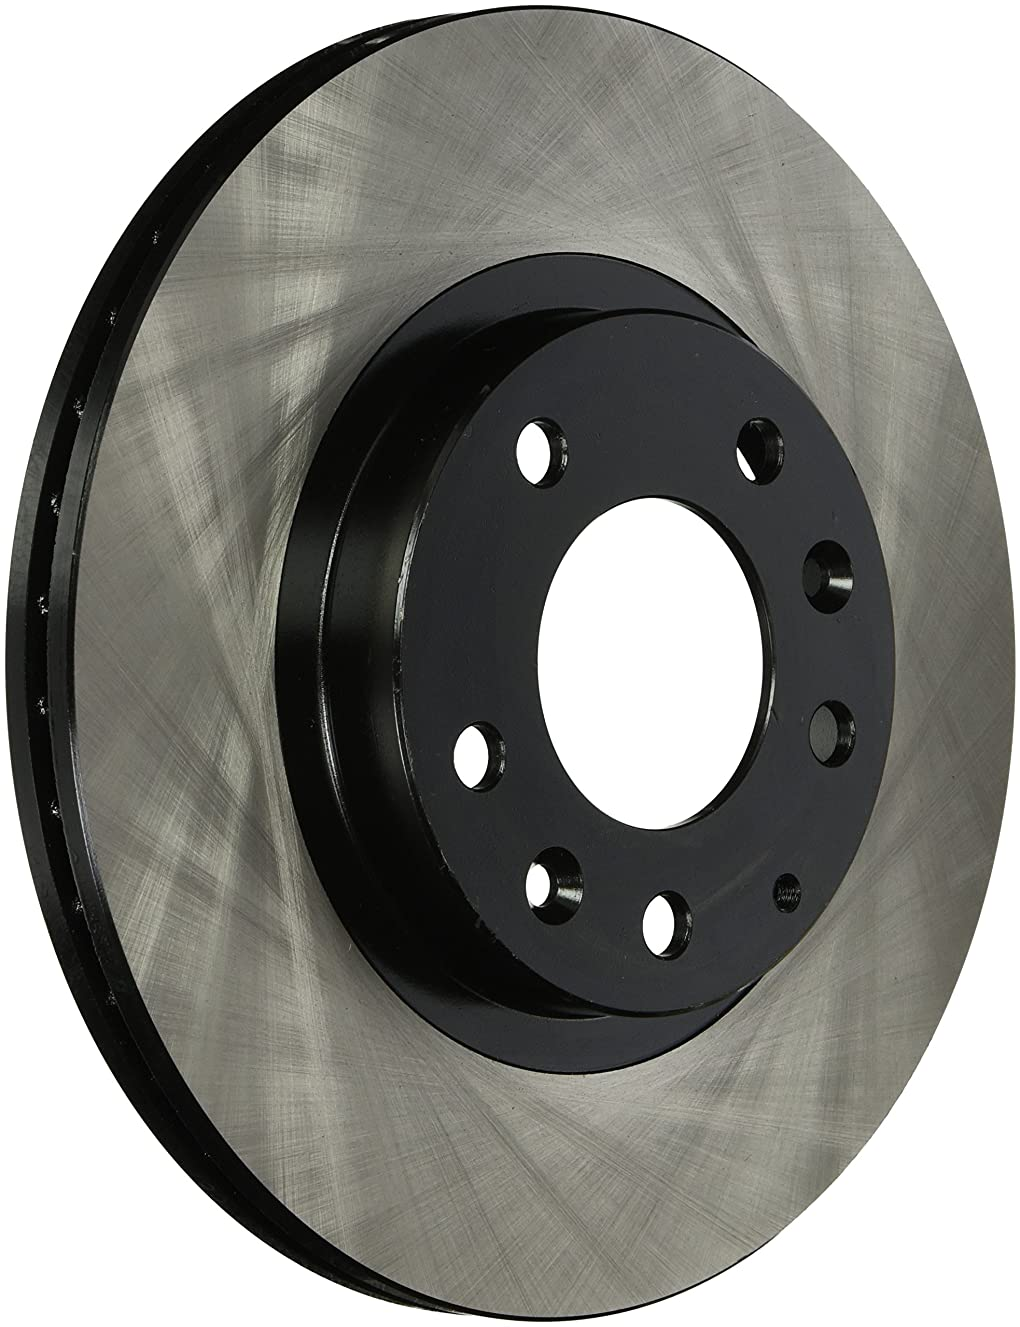 Centric Parts 120.45075 Premium Brake Rotor with E-Coating